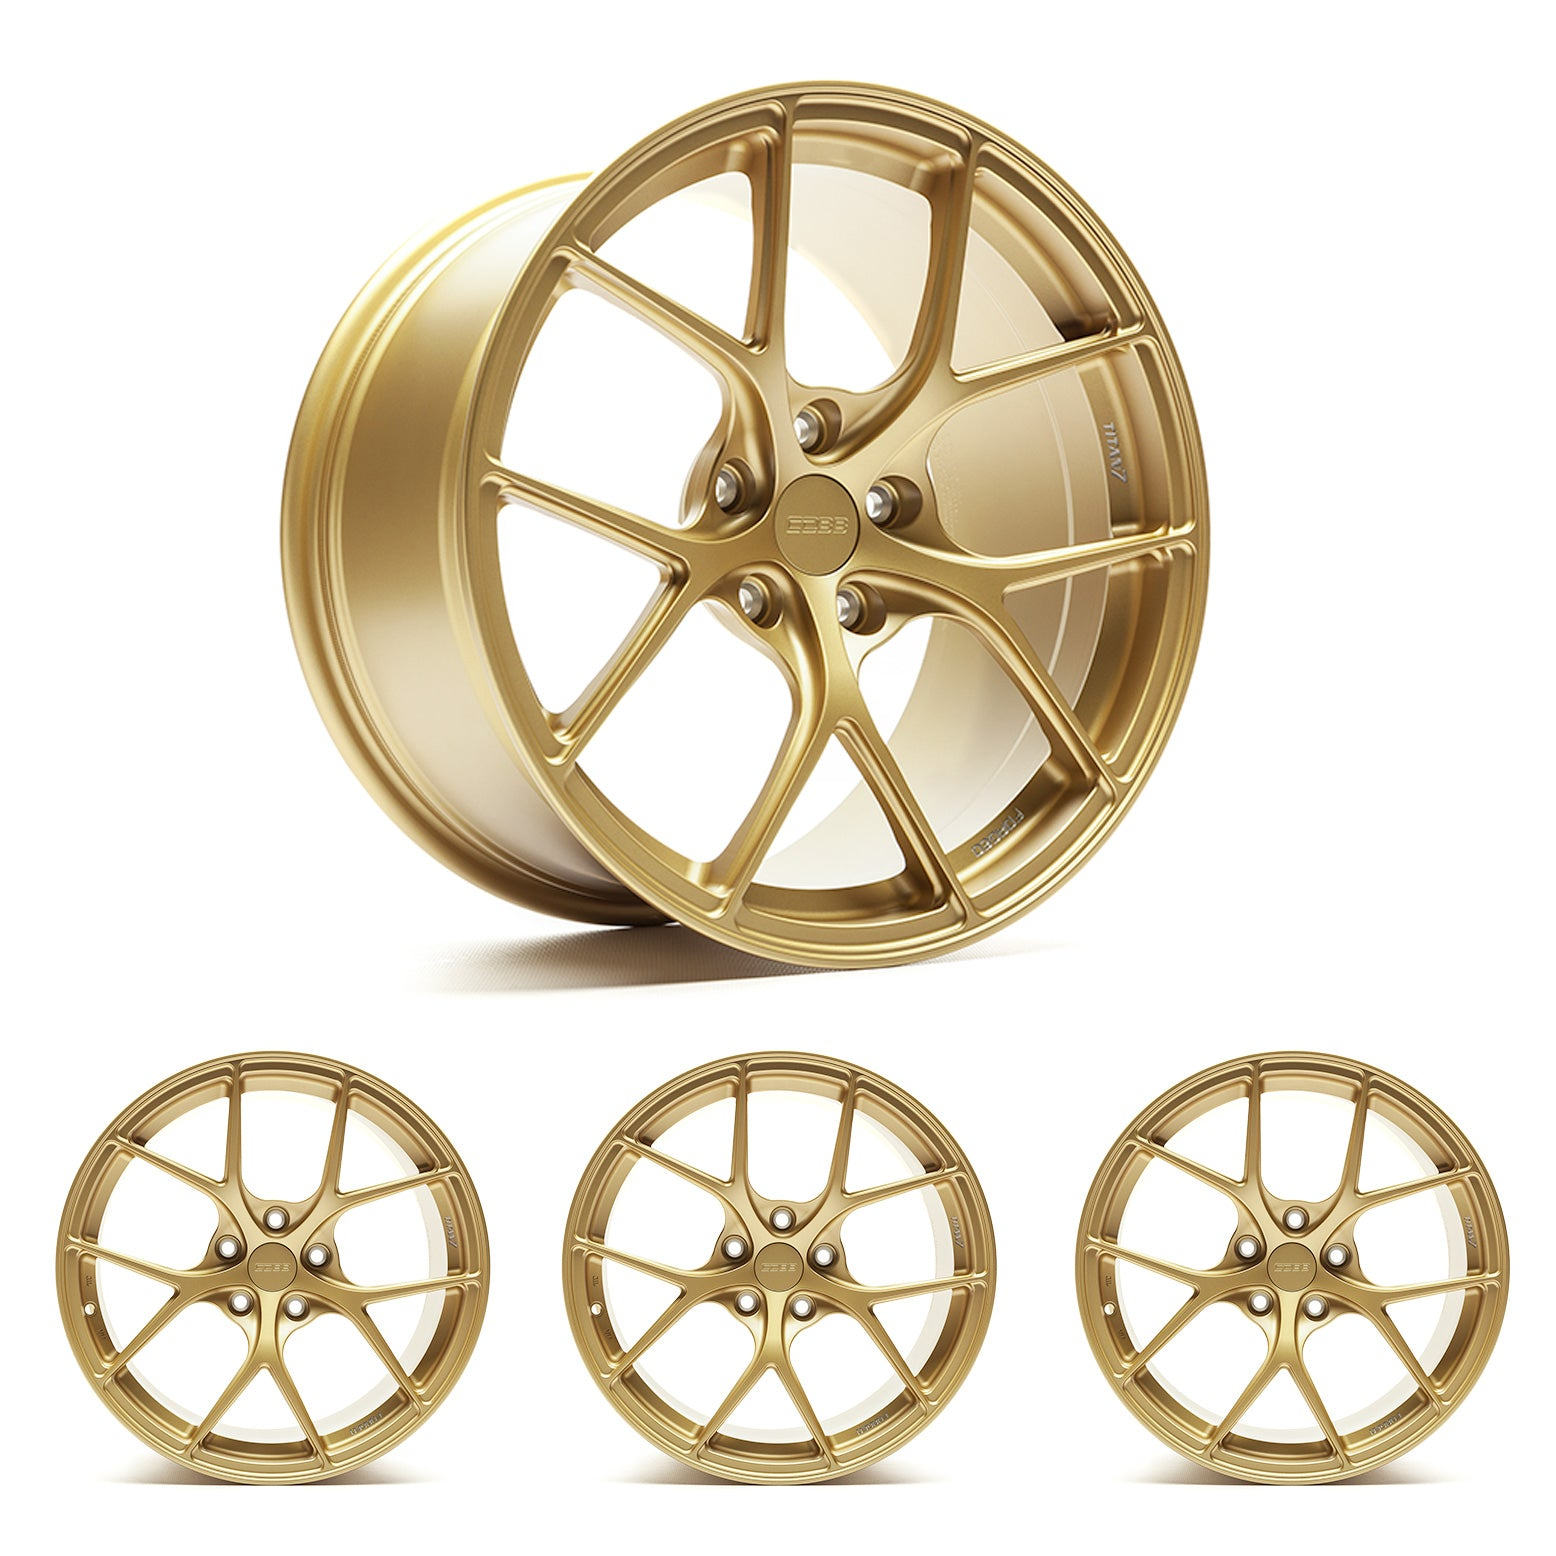 "Titan7 T-S5 COBB Edition 19"" x 9.5"" Cyber Gold Wheels"